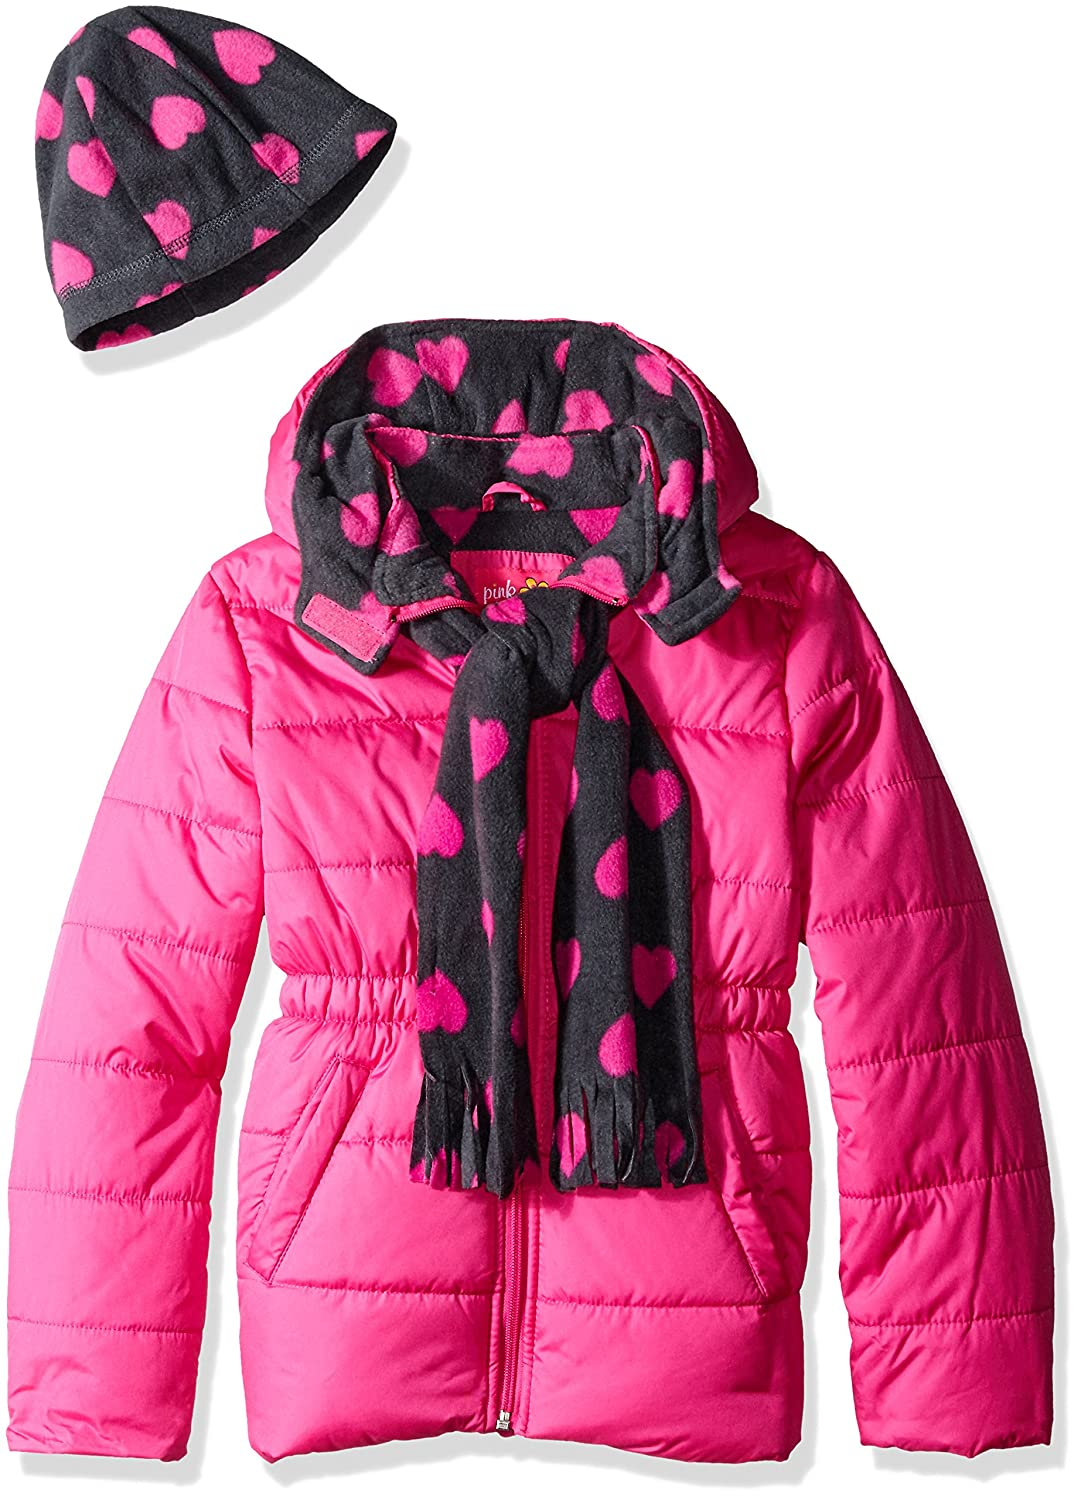 Pink Platinum girls Puffer Jacket With Heart Print Lining and Accessories Black 4 PP874332-BLK